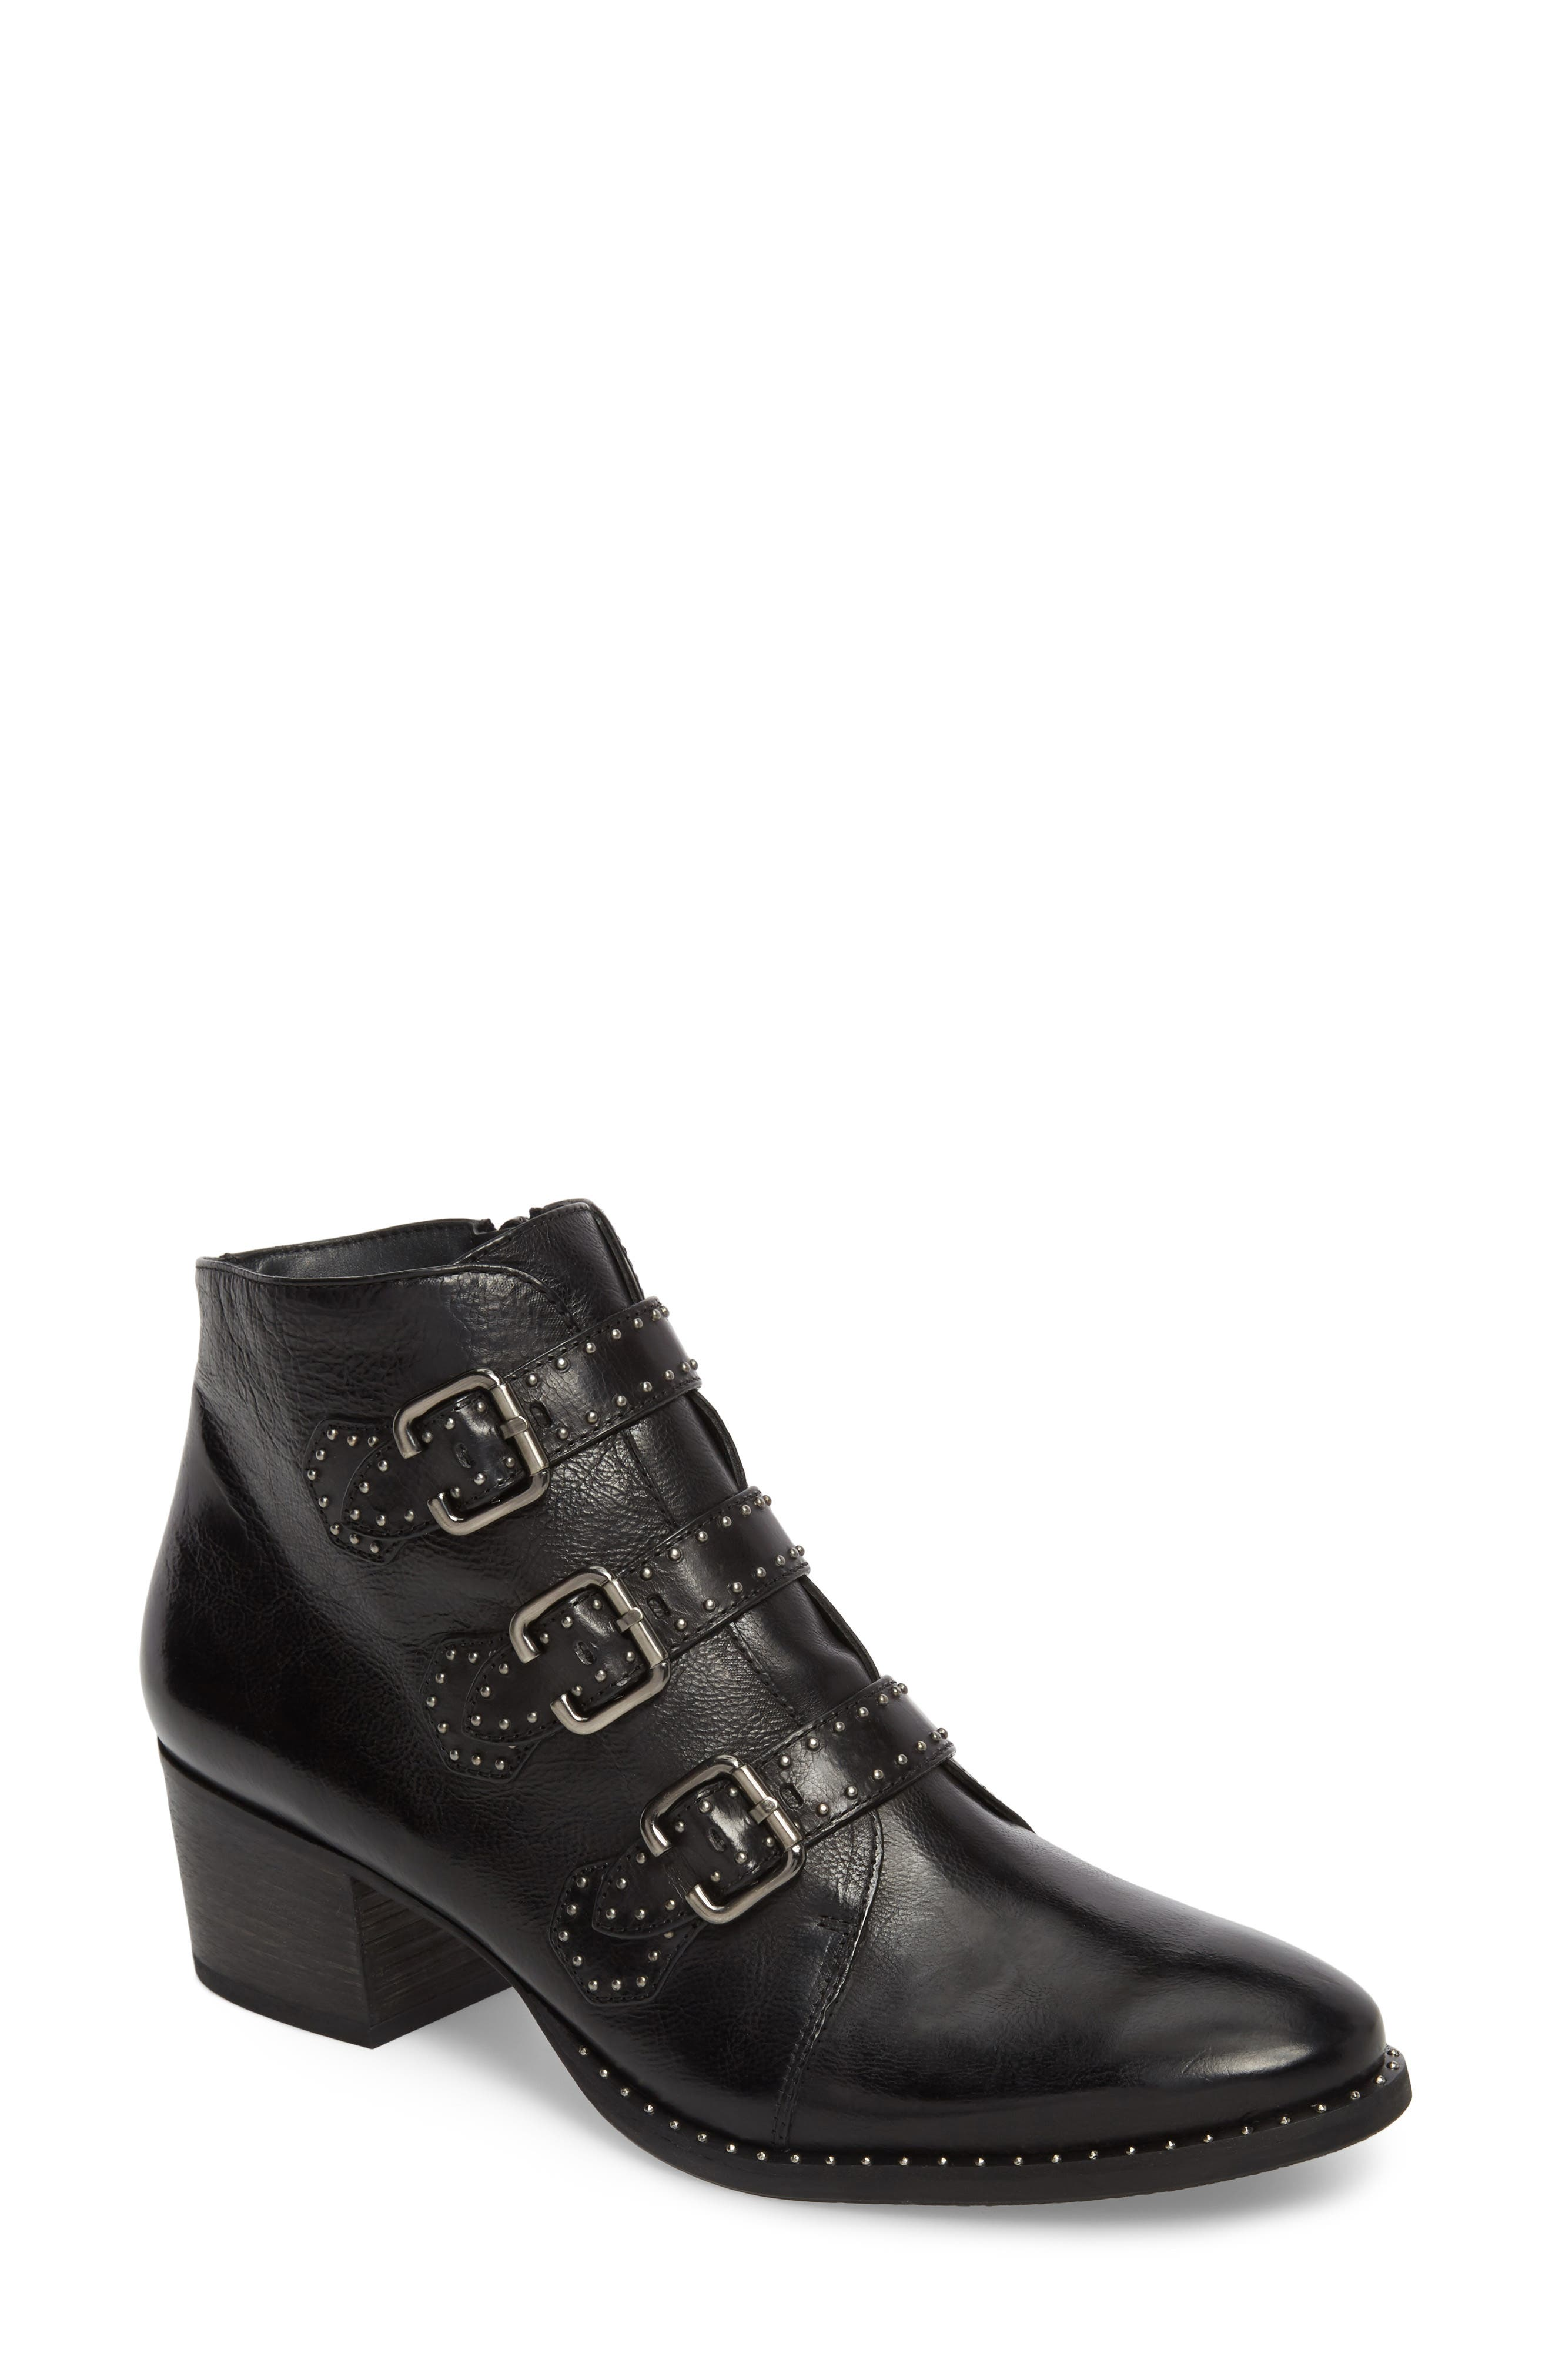 PAUL GREEN, Soho Bootie, Main thumbnail 1, color, BLACK LEATHER